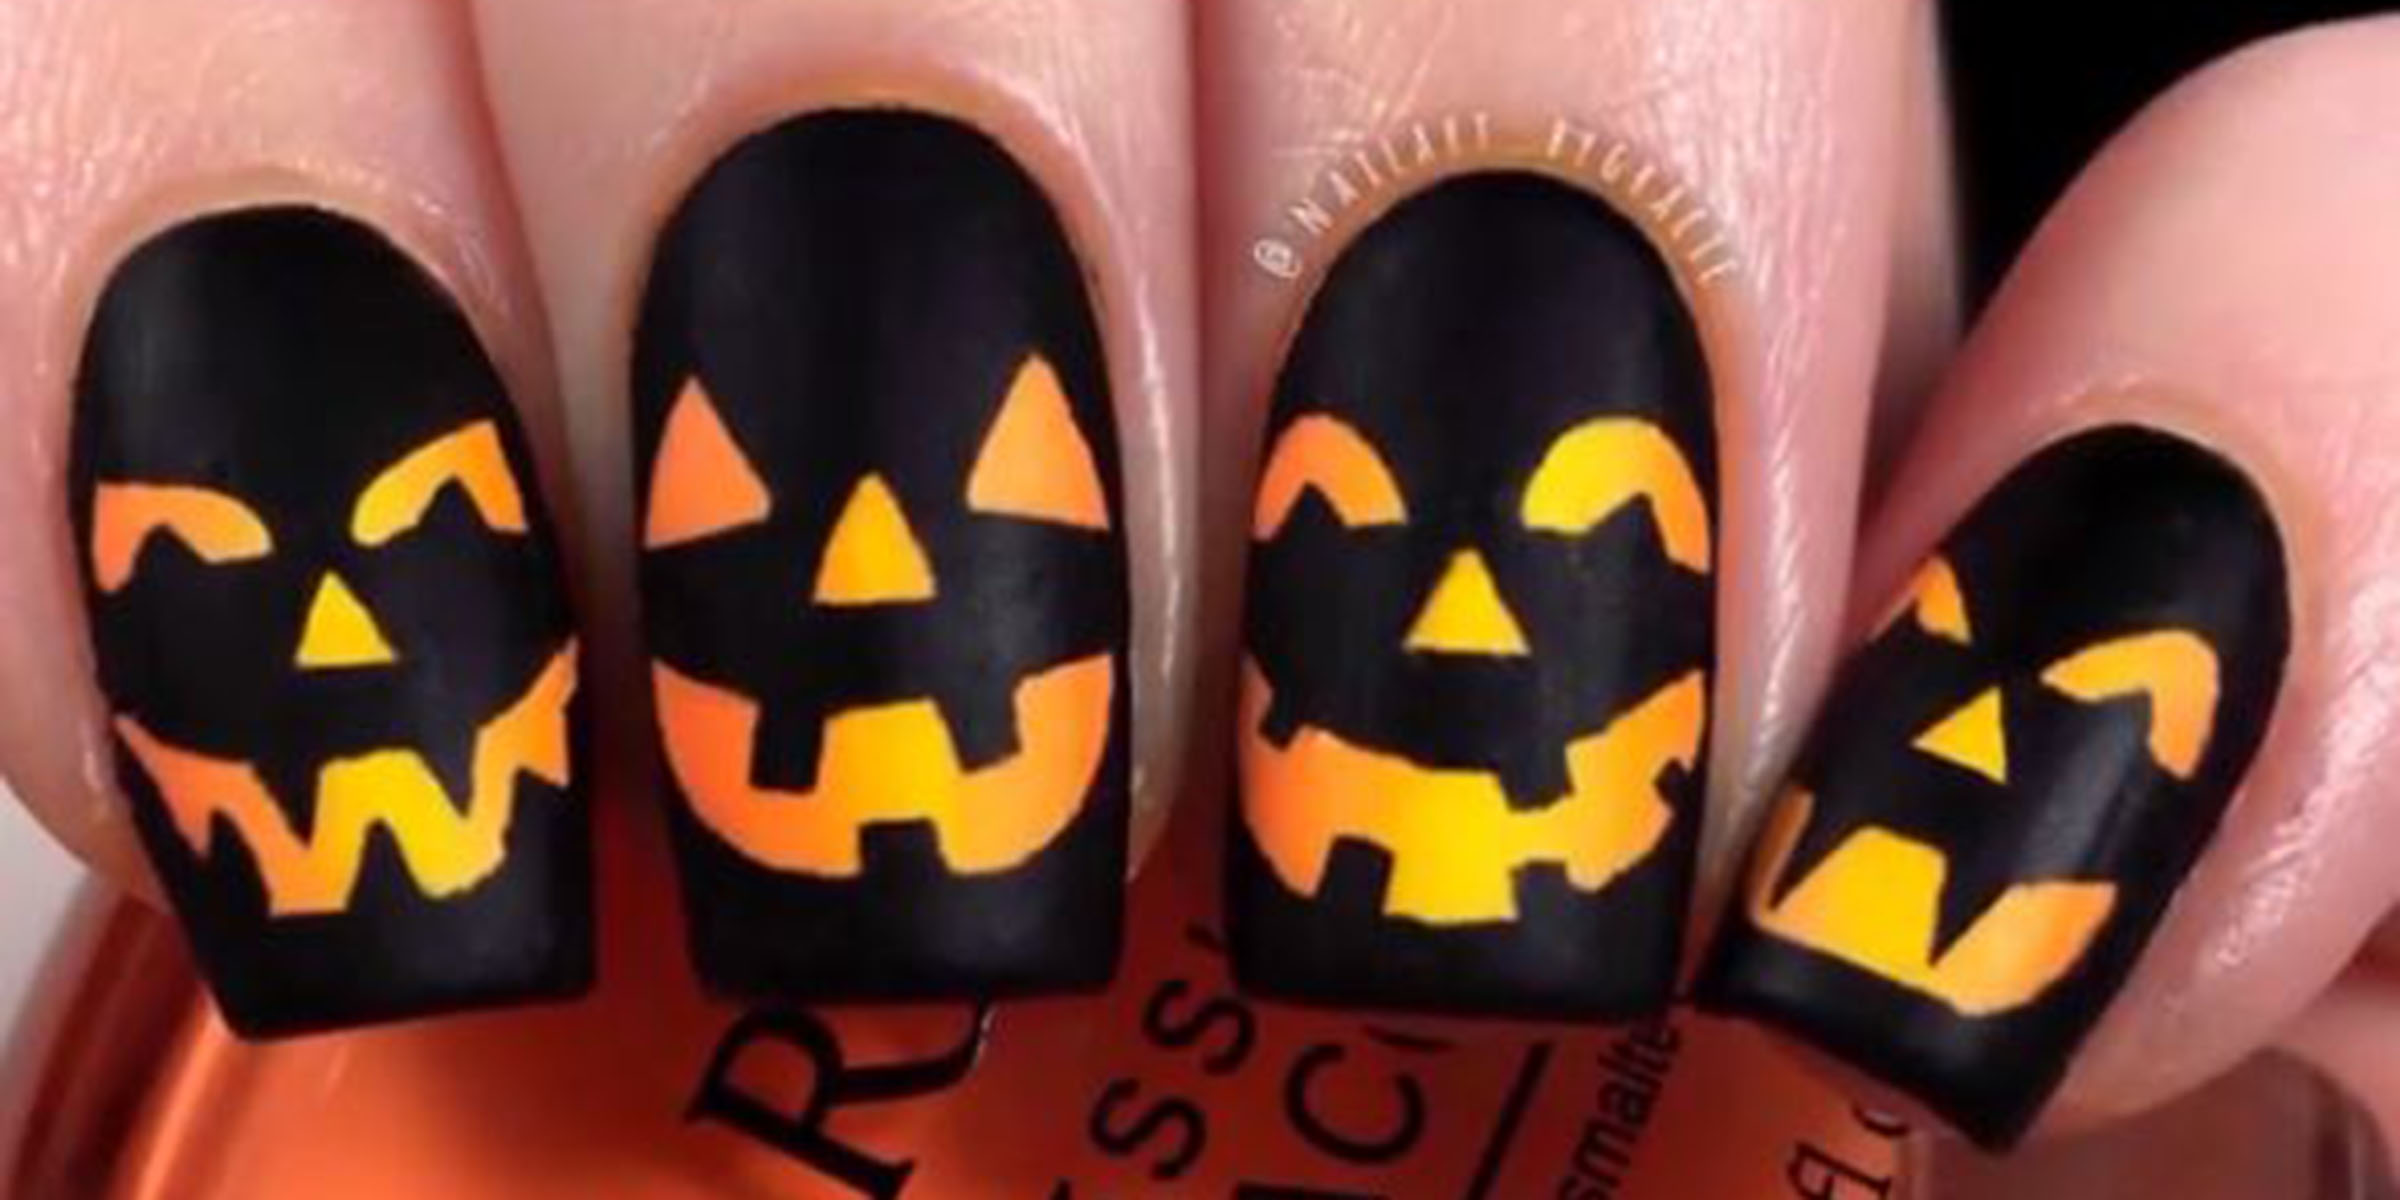 15 Halloween Nail Designs For Beginners And Experts Alike